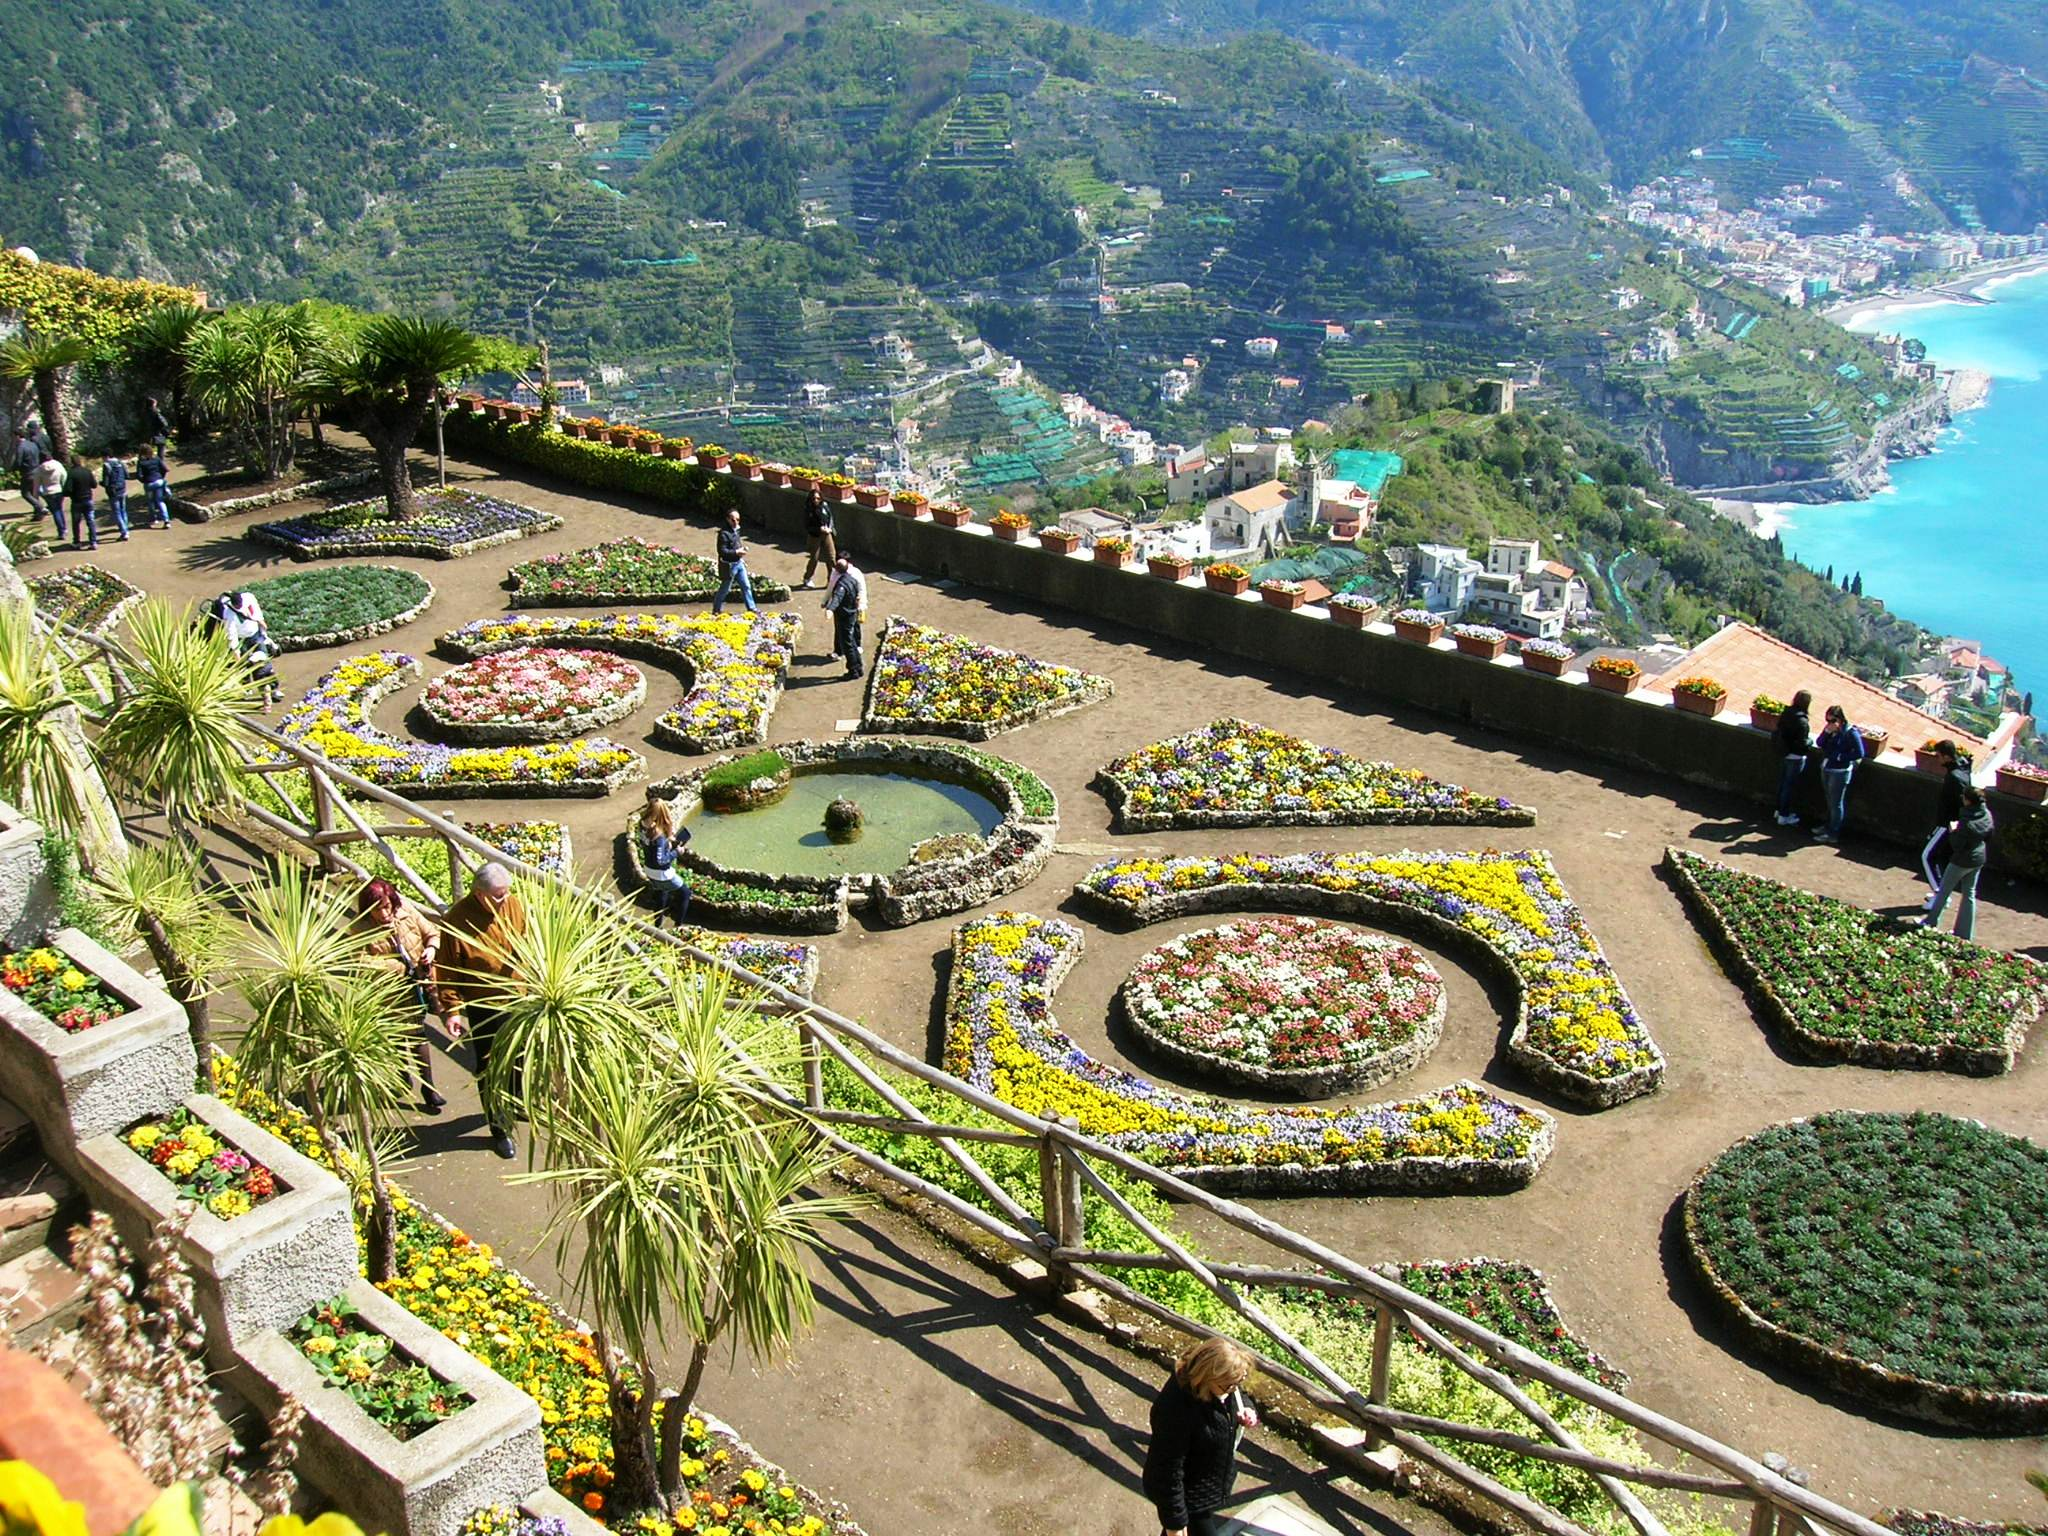 The cultural district of Ravello